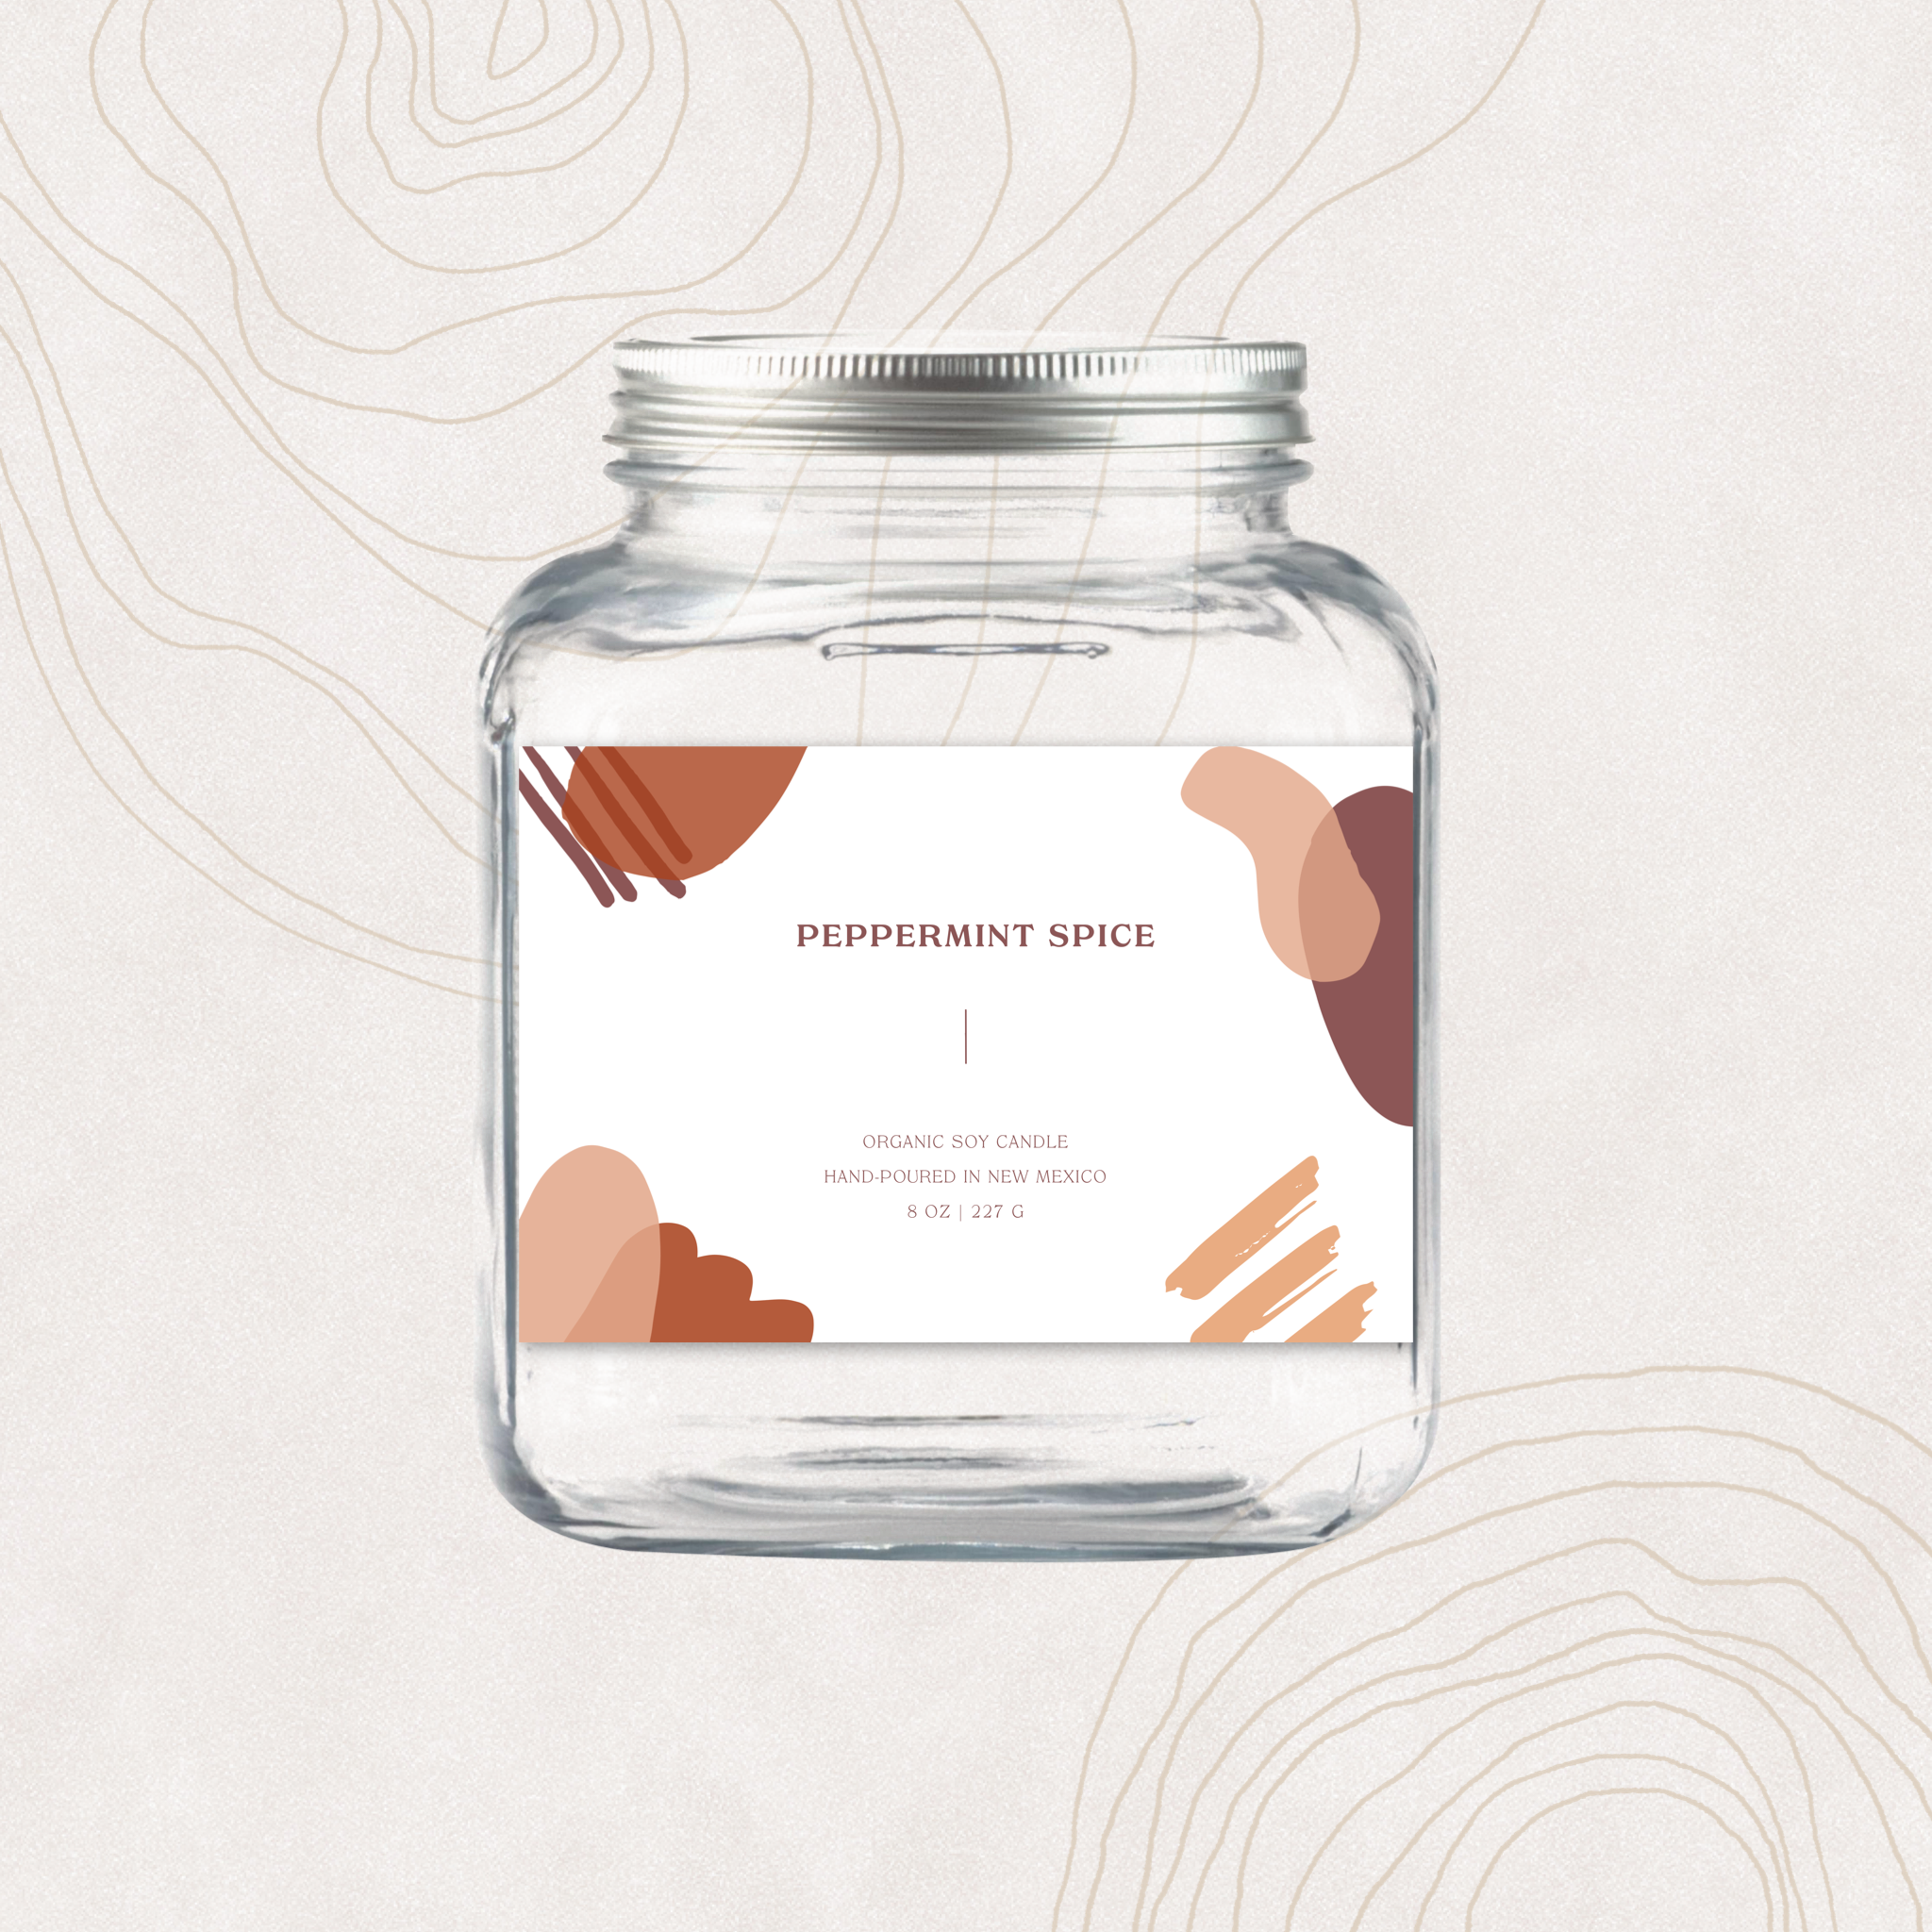 Custom candle label concept design made for a client with Over.